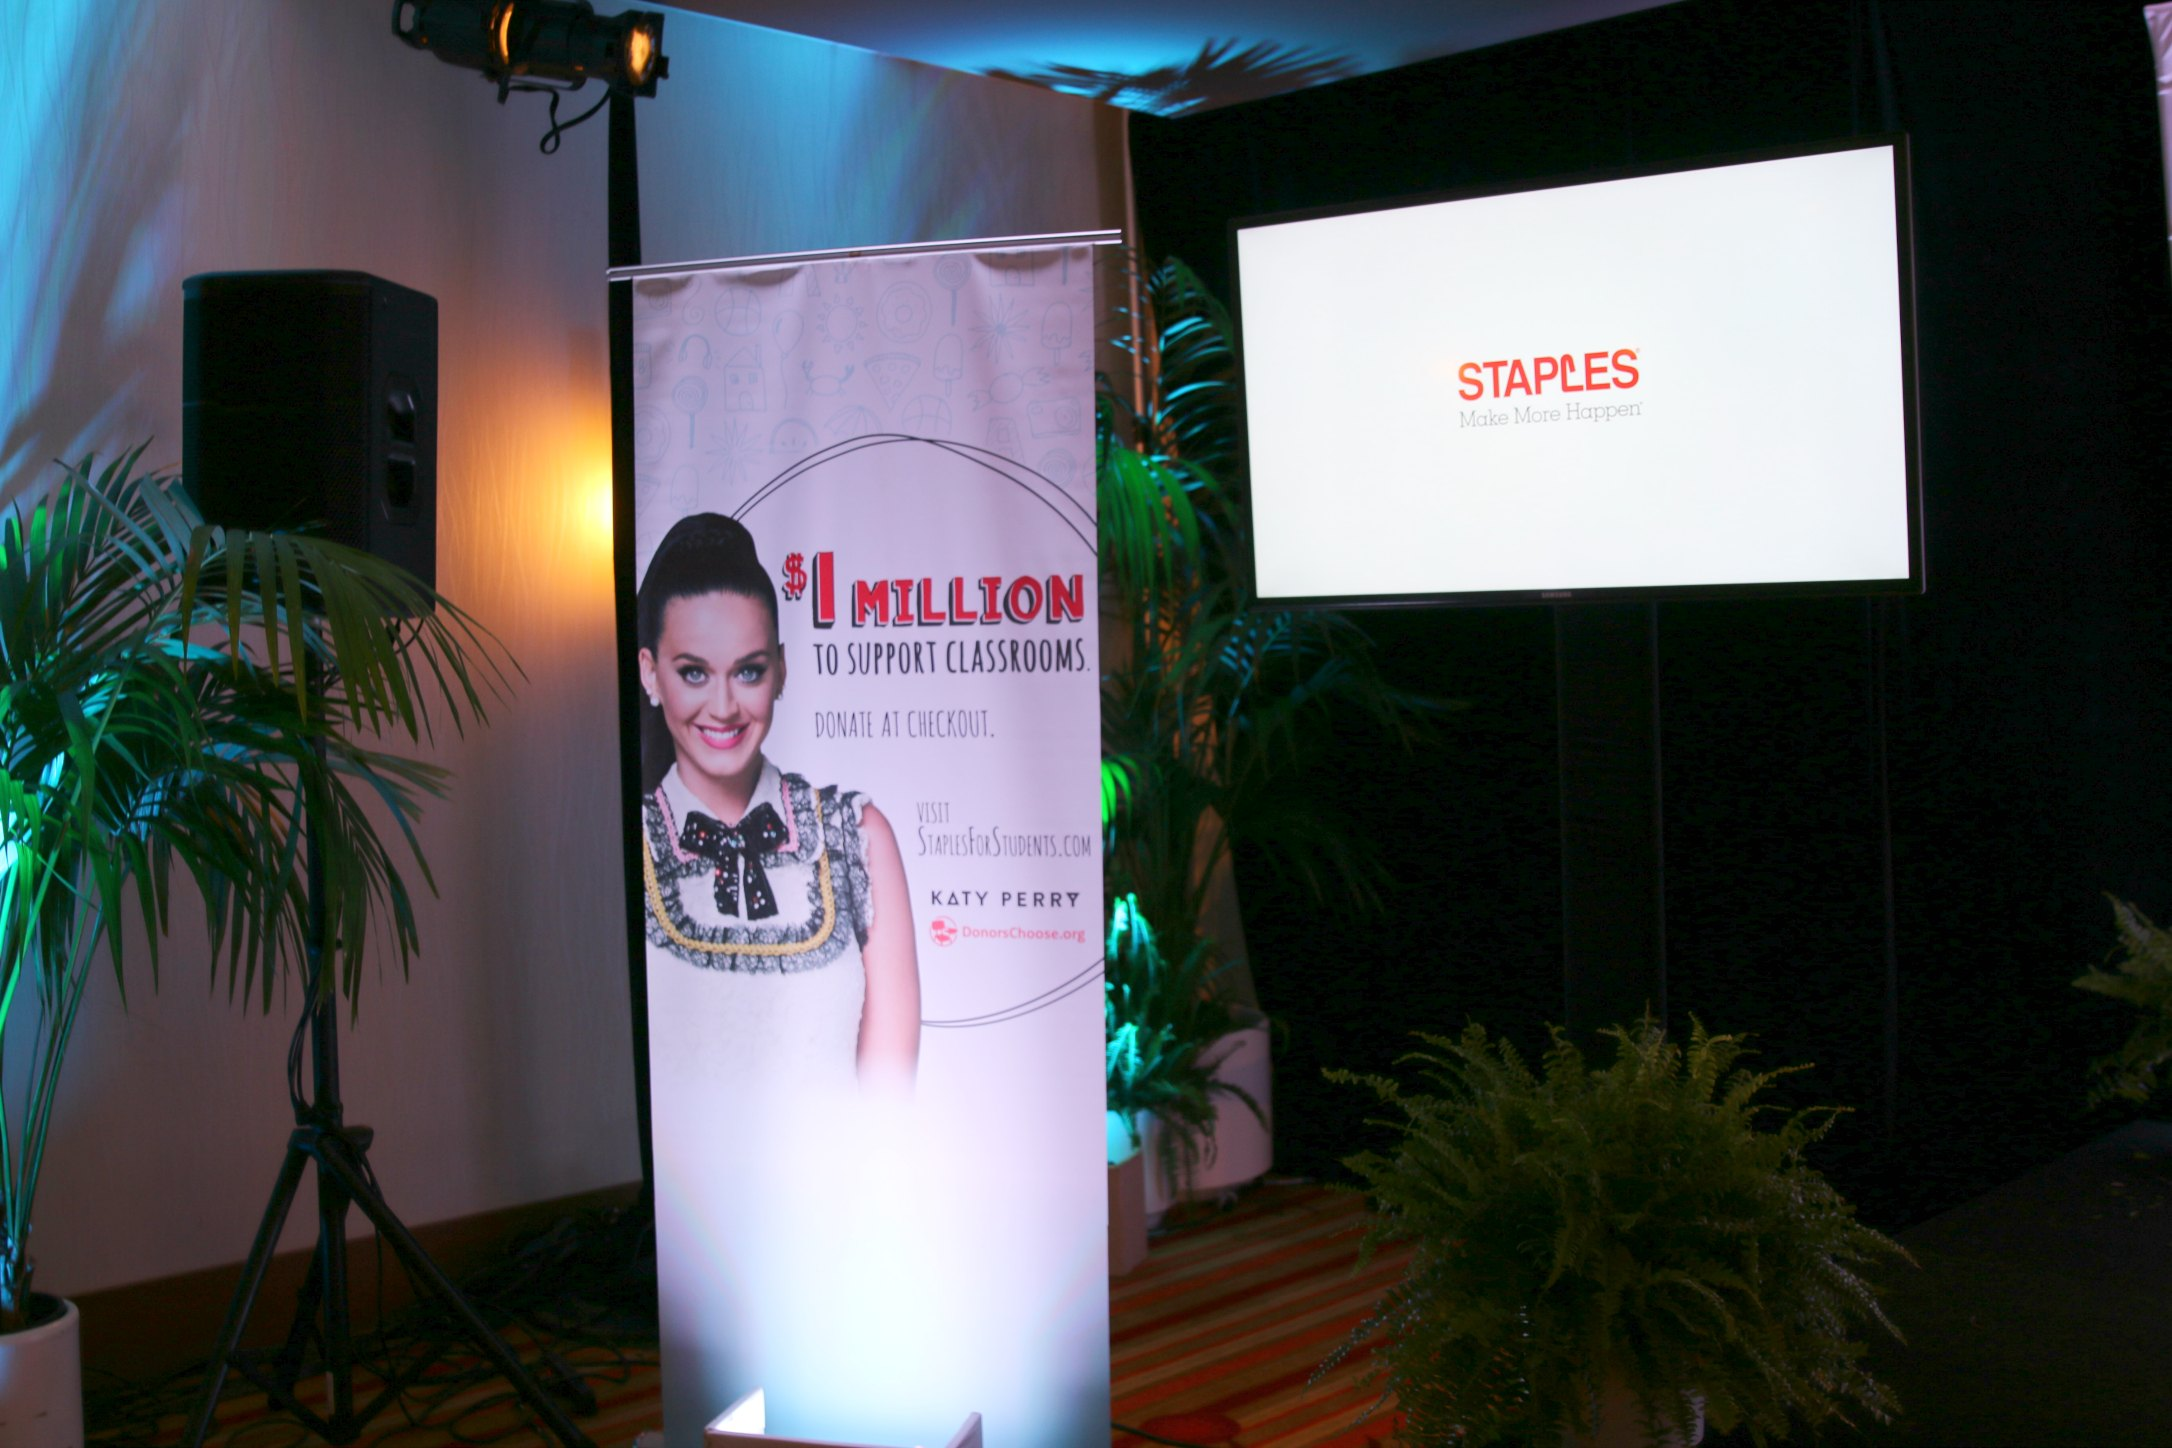 1 million to support classrooms